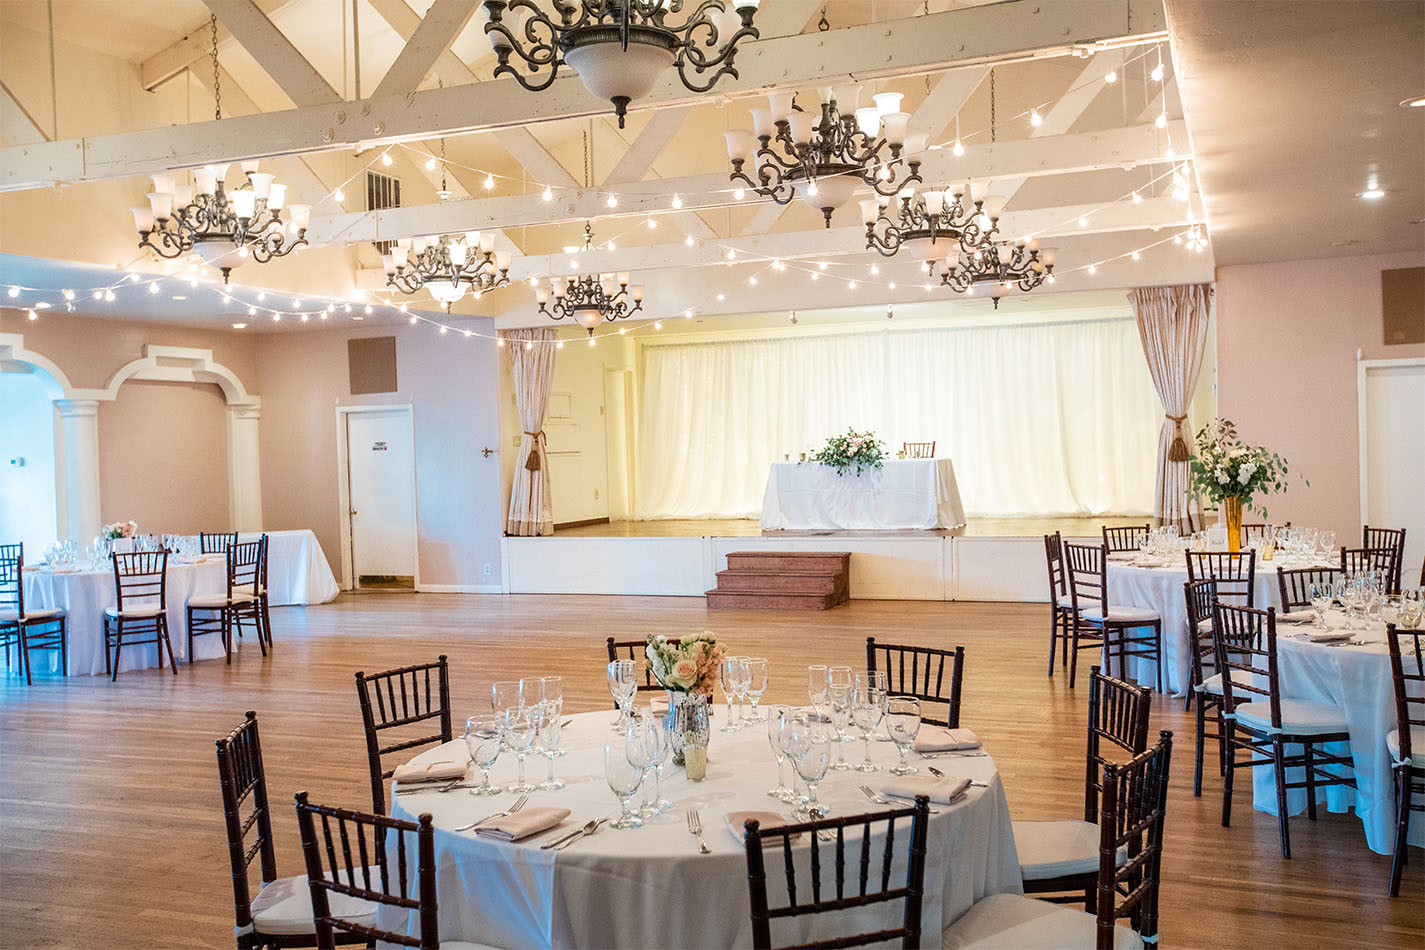 Empire Ballroom with hardwood floors and wood beam ceilings.